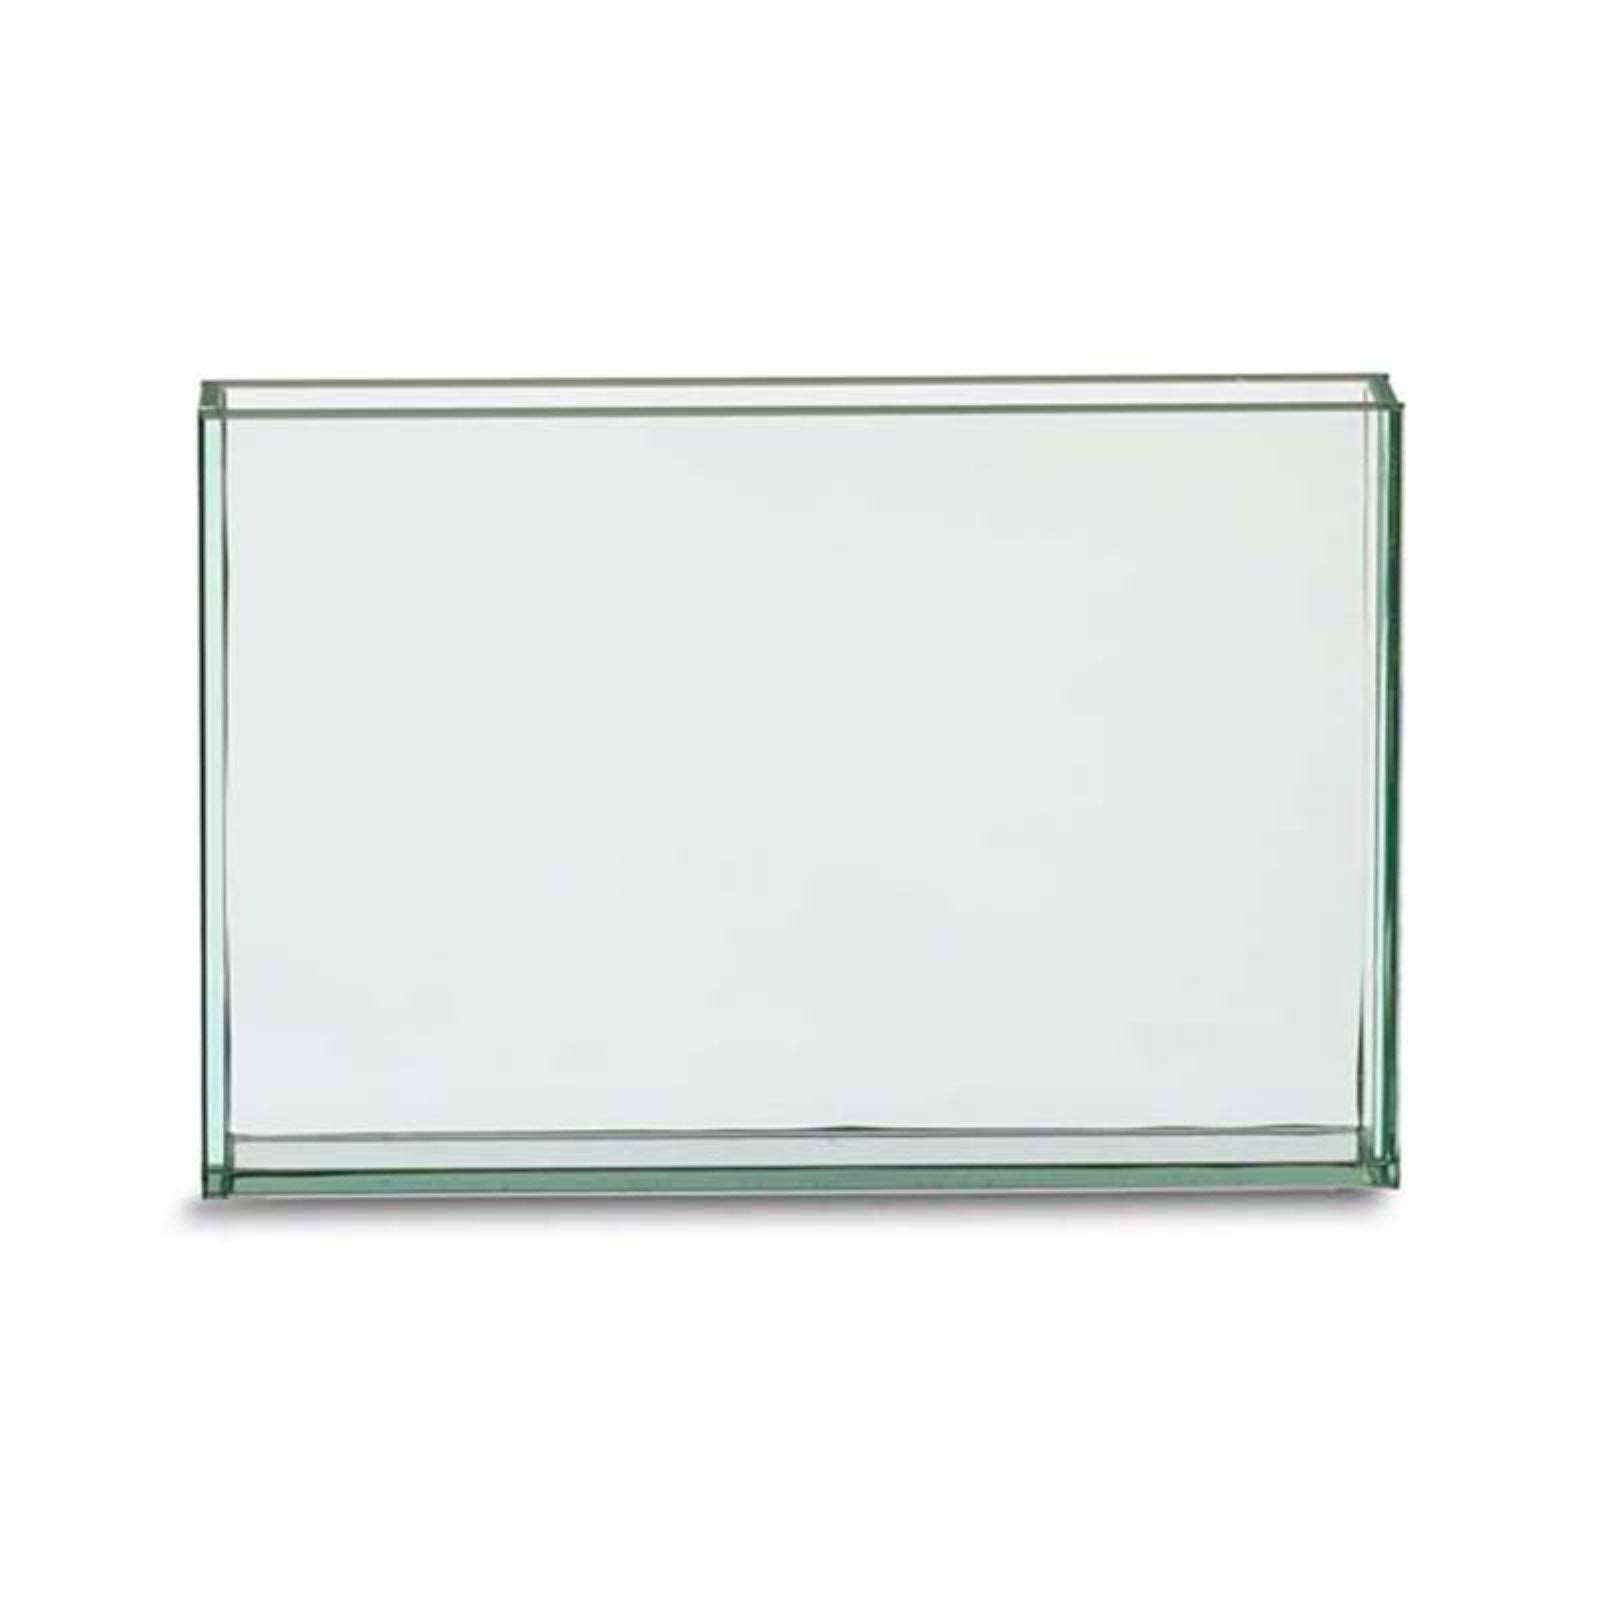 Design Ideas Vision Rectangle Vase, Small, Clear